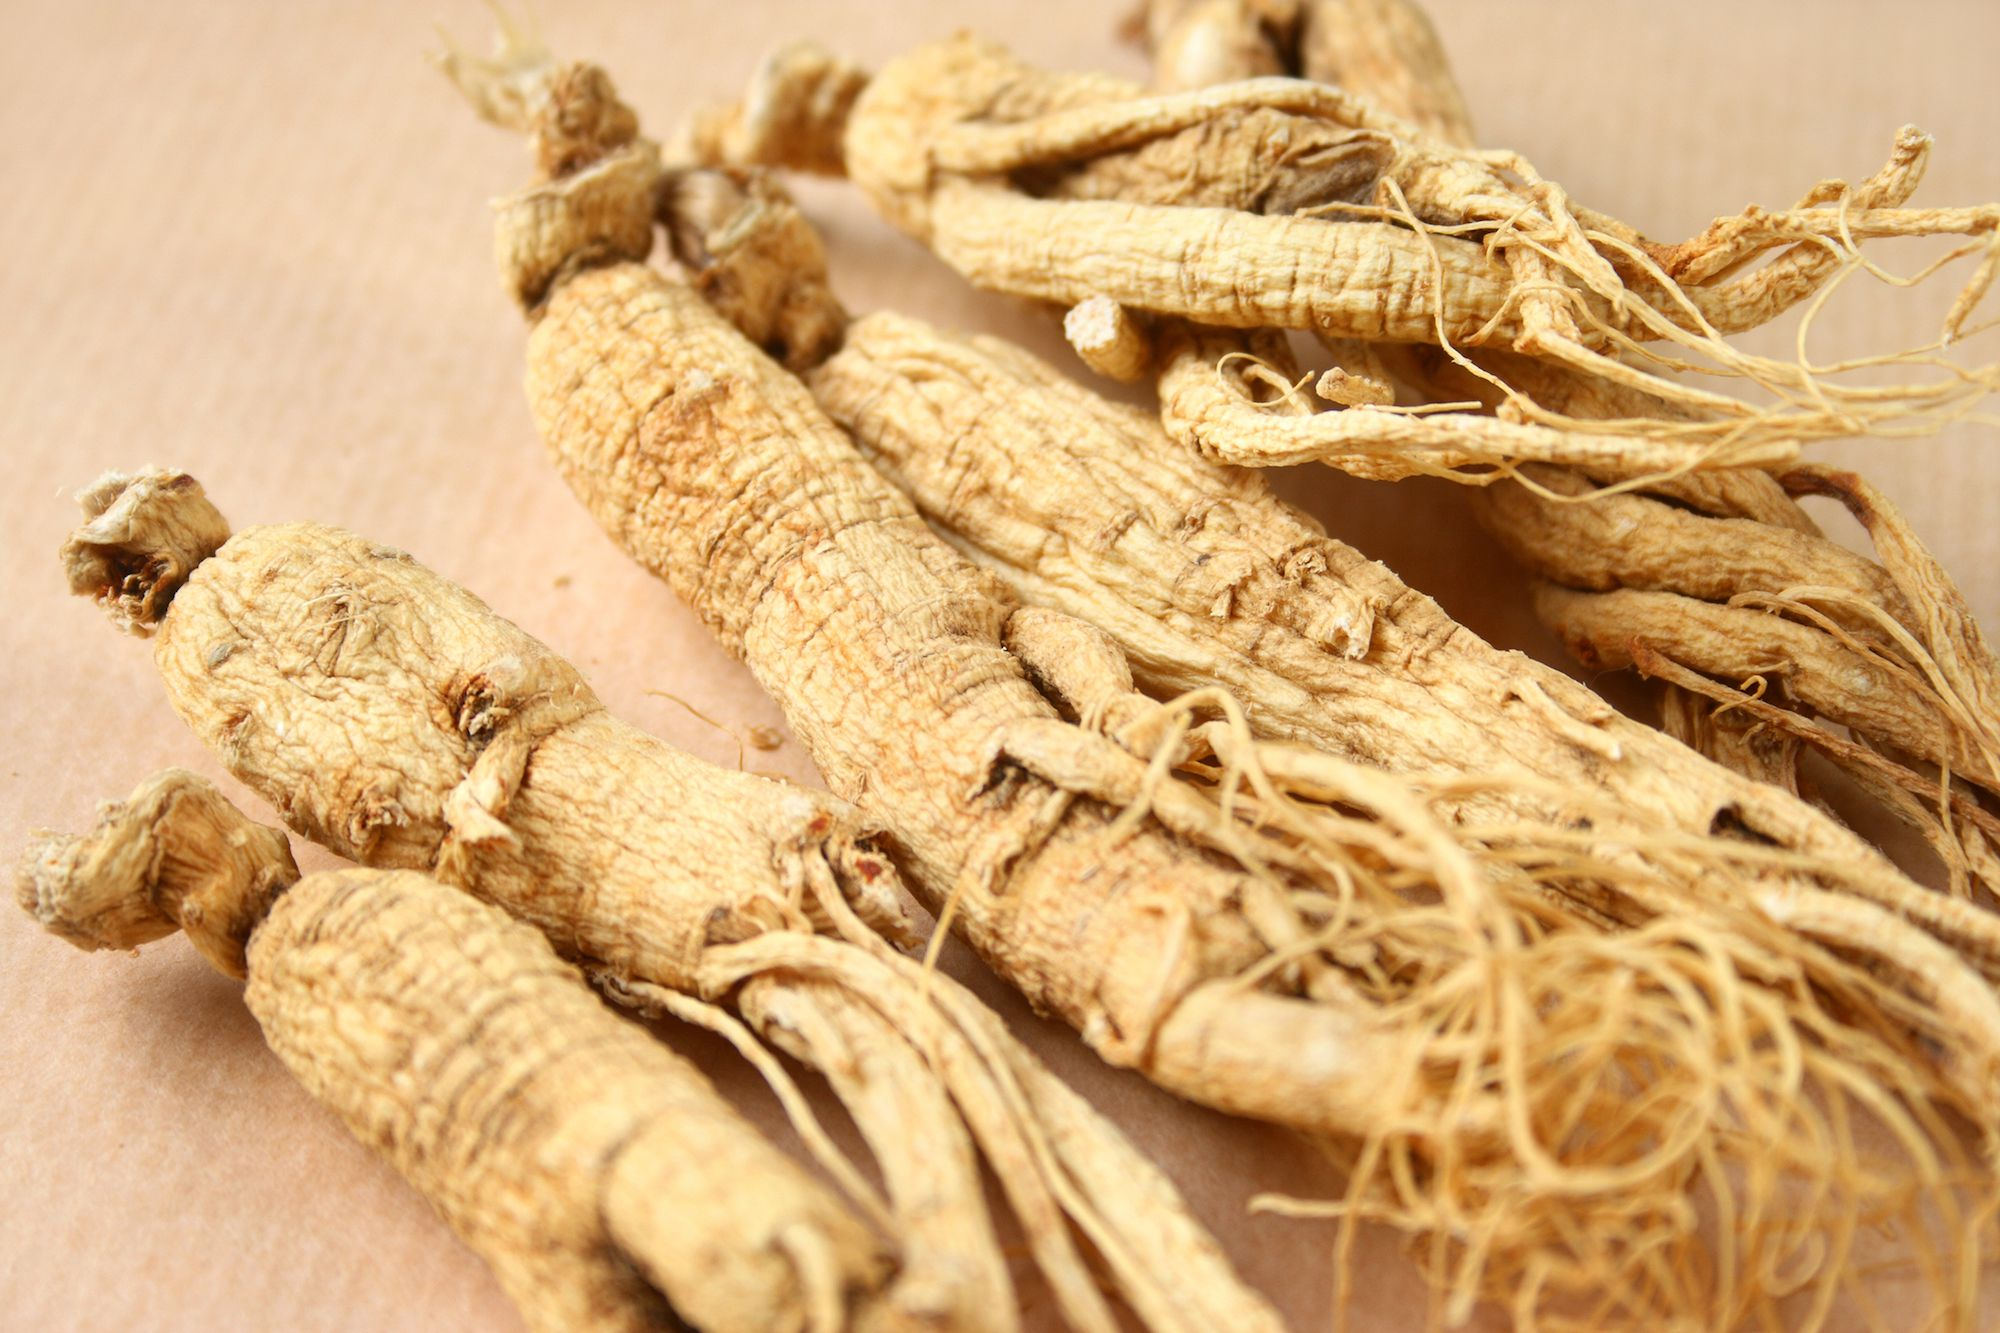 Panax Ginseng: Benefits, Side Effects, Dosage, and Interactions